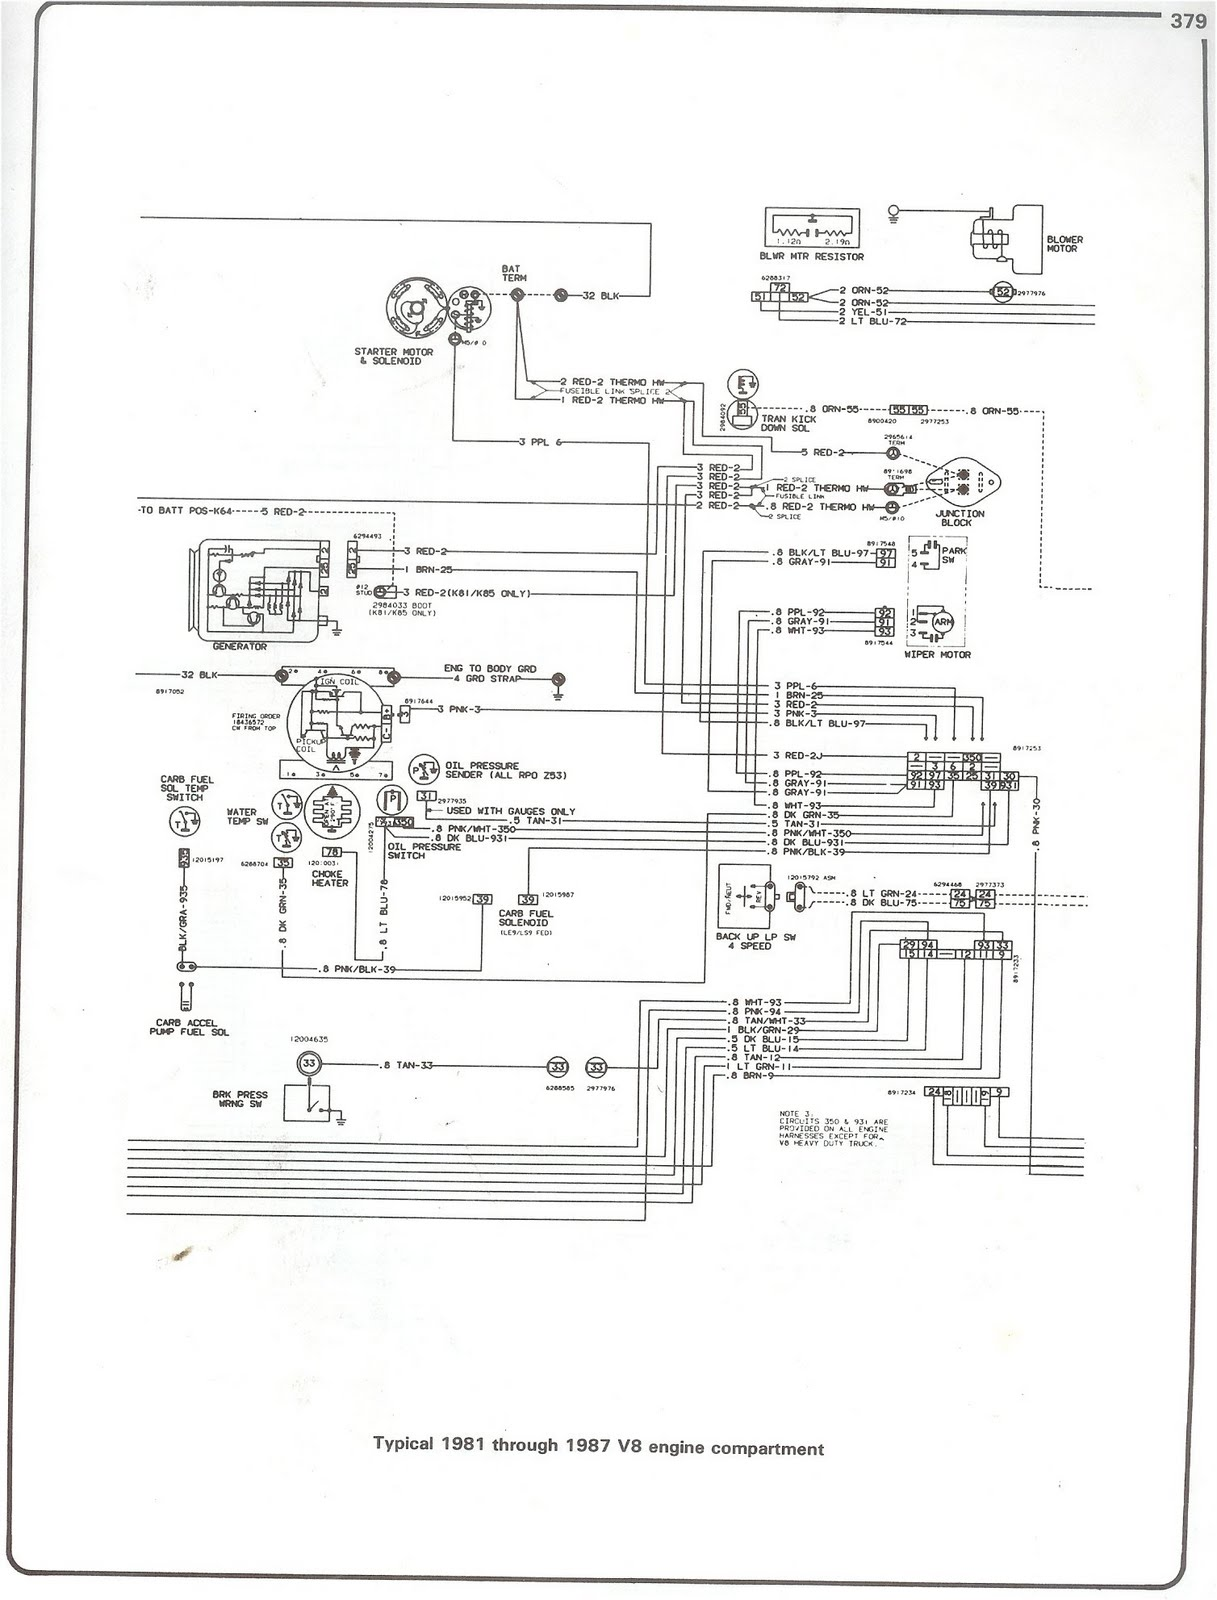 medium resolution of 1987 chevy truck wiring harness wiring diagram post 1987 chevy truck wiring harness wiring diagram img